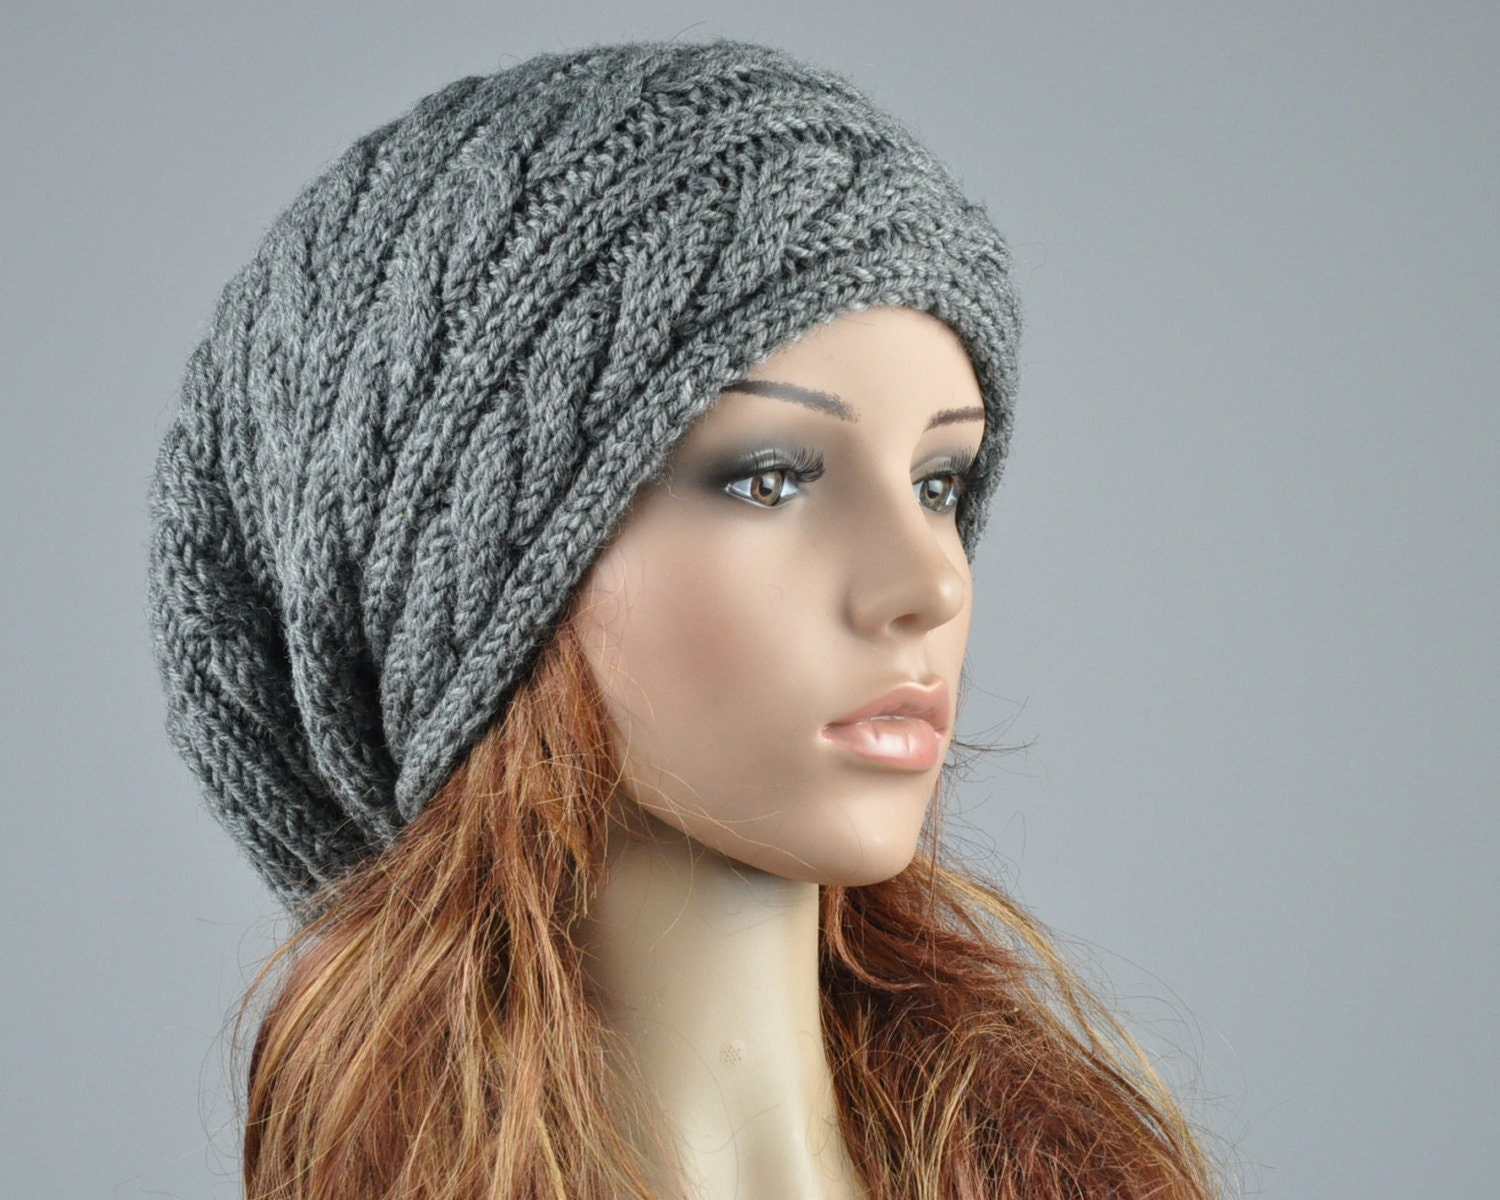 Knitting Pattern For Slouchy Hat : Hand knit hat woman men unisex Charcoal hat slouchy hat cable